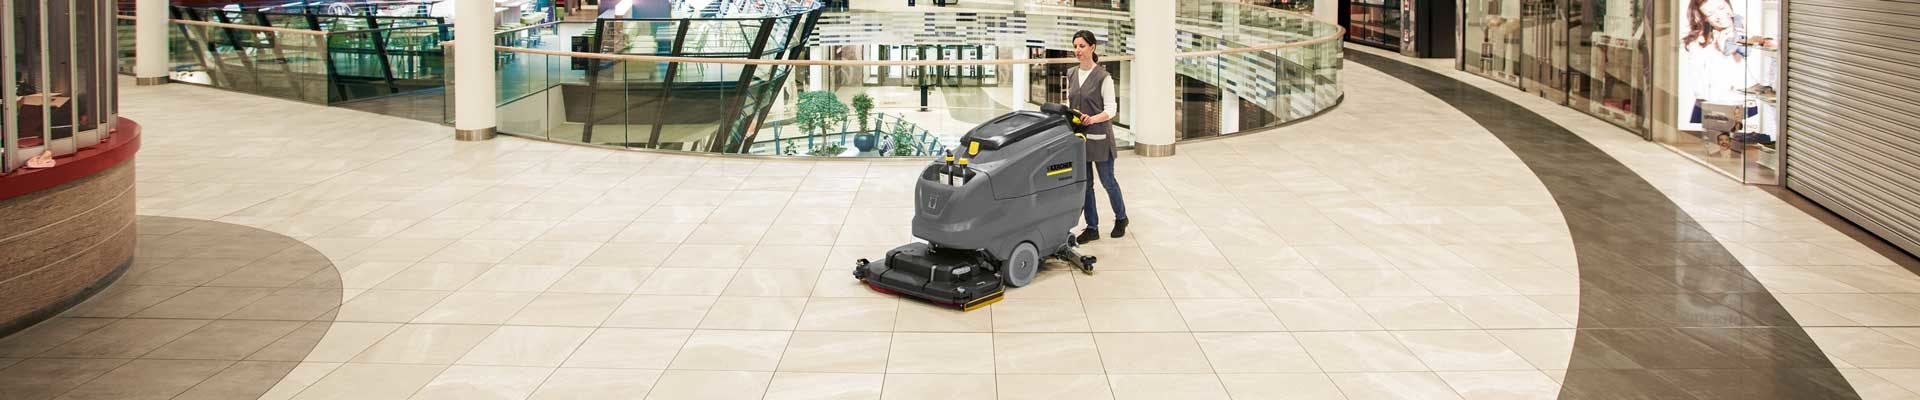 Floor scrubber in shopping mall